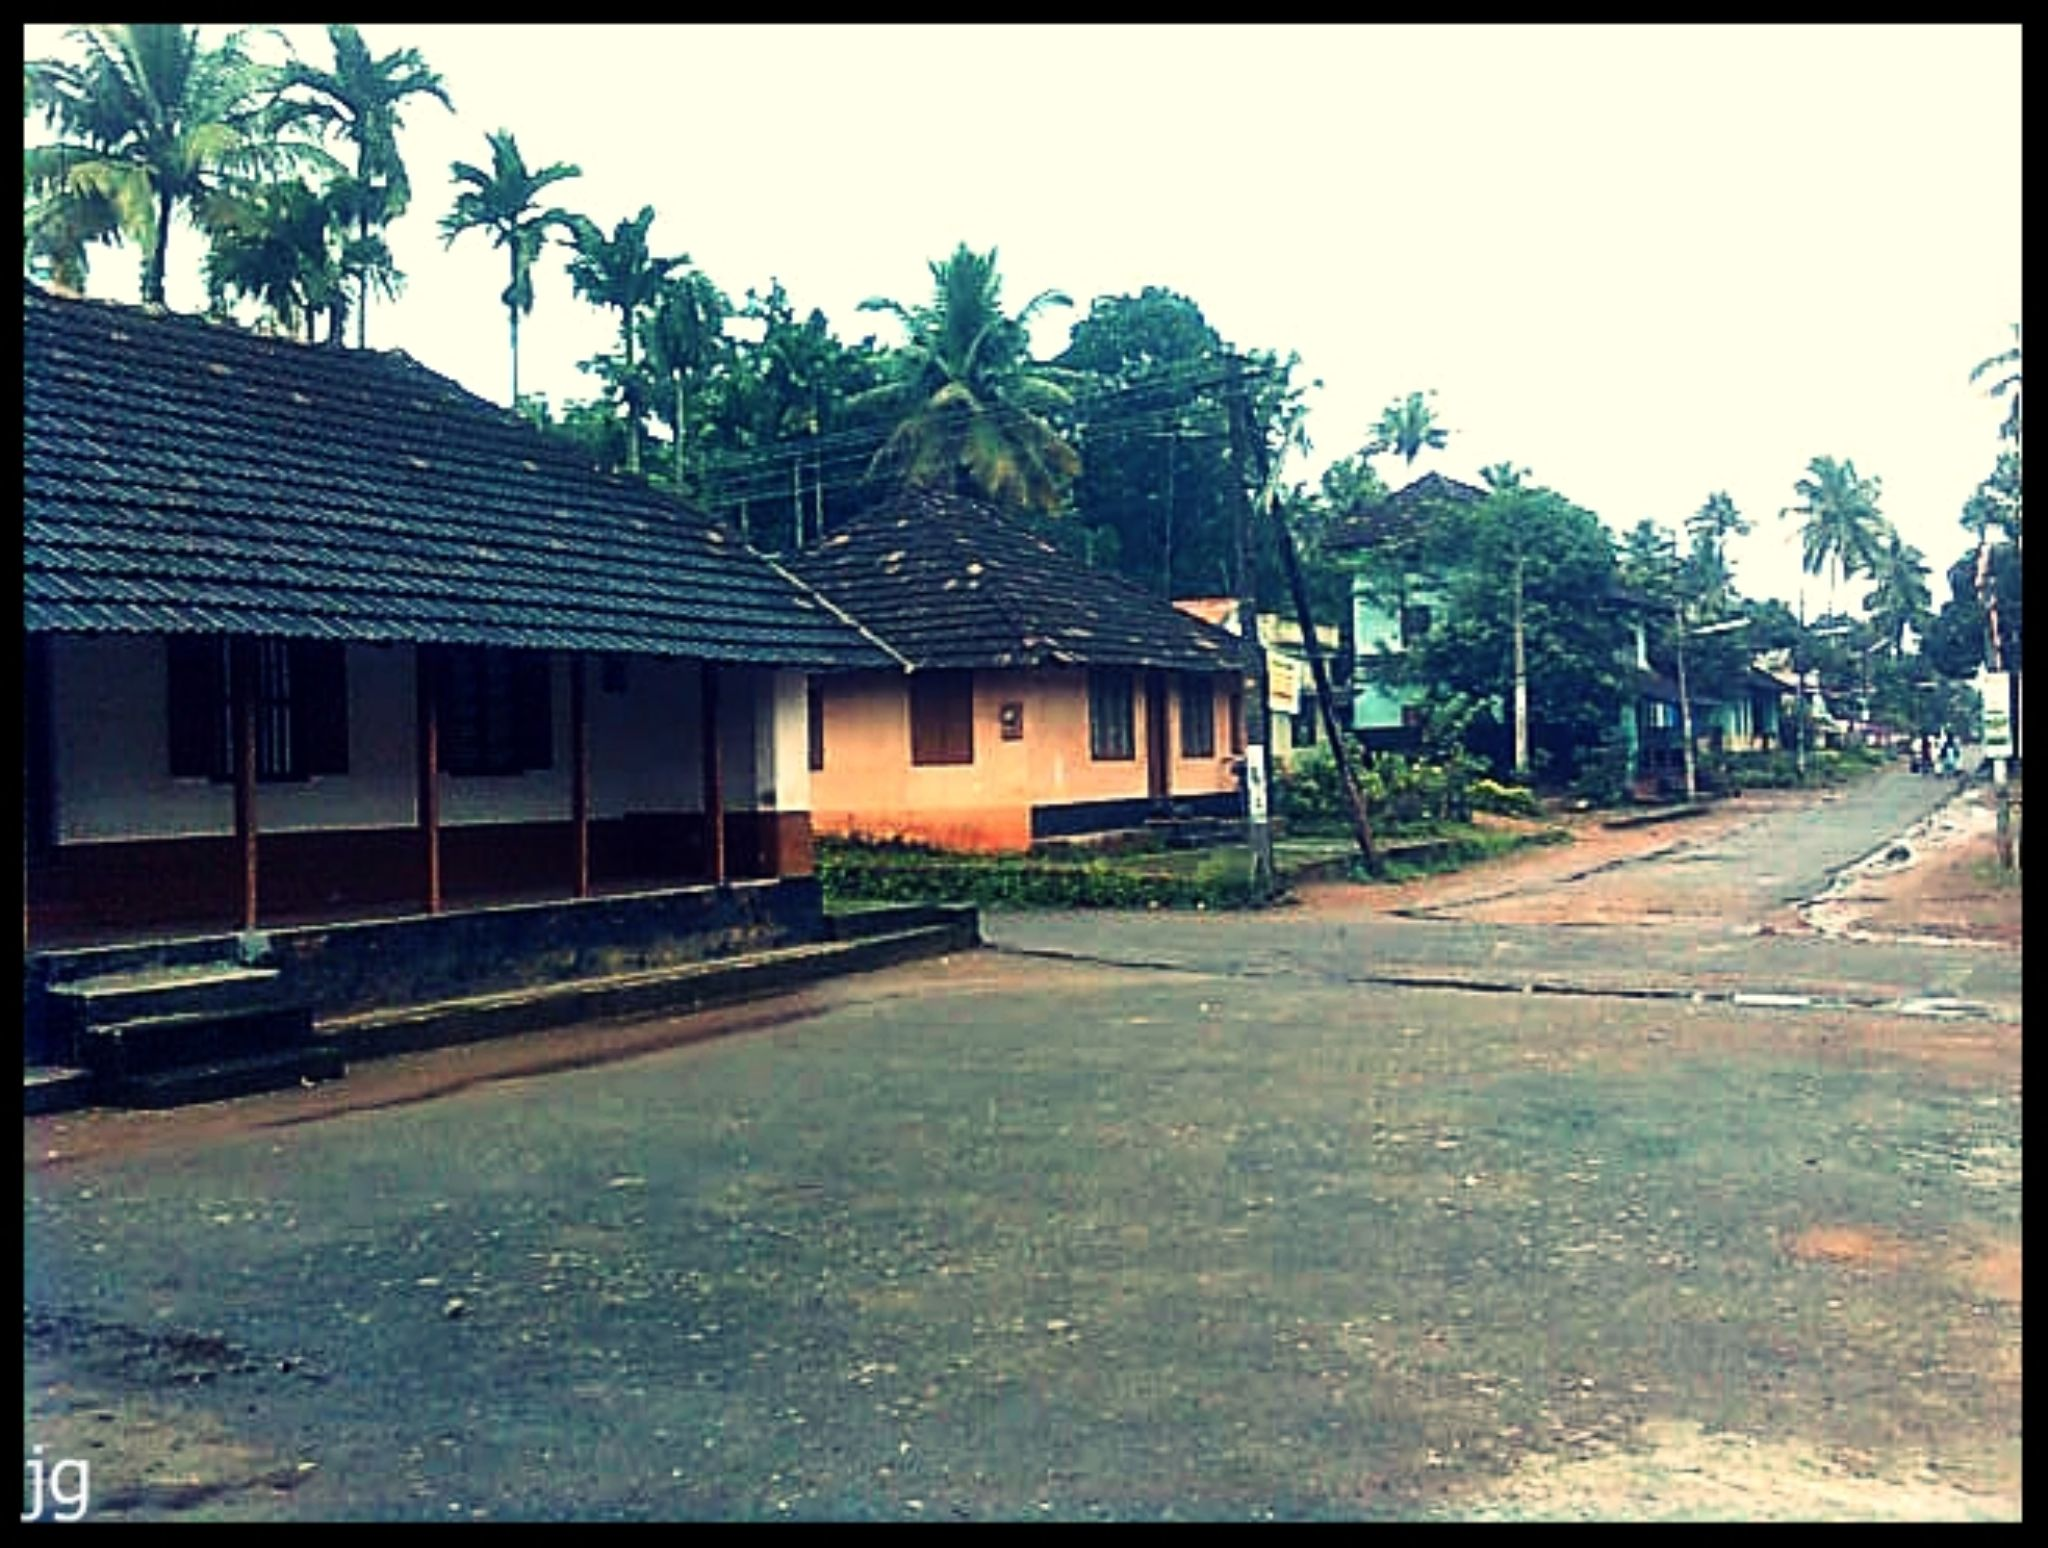 Village area in Gods Own Country (Kerala,India) by Jg Mobile Photography